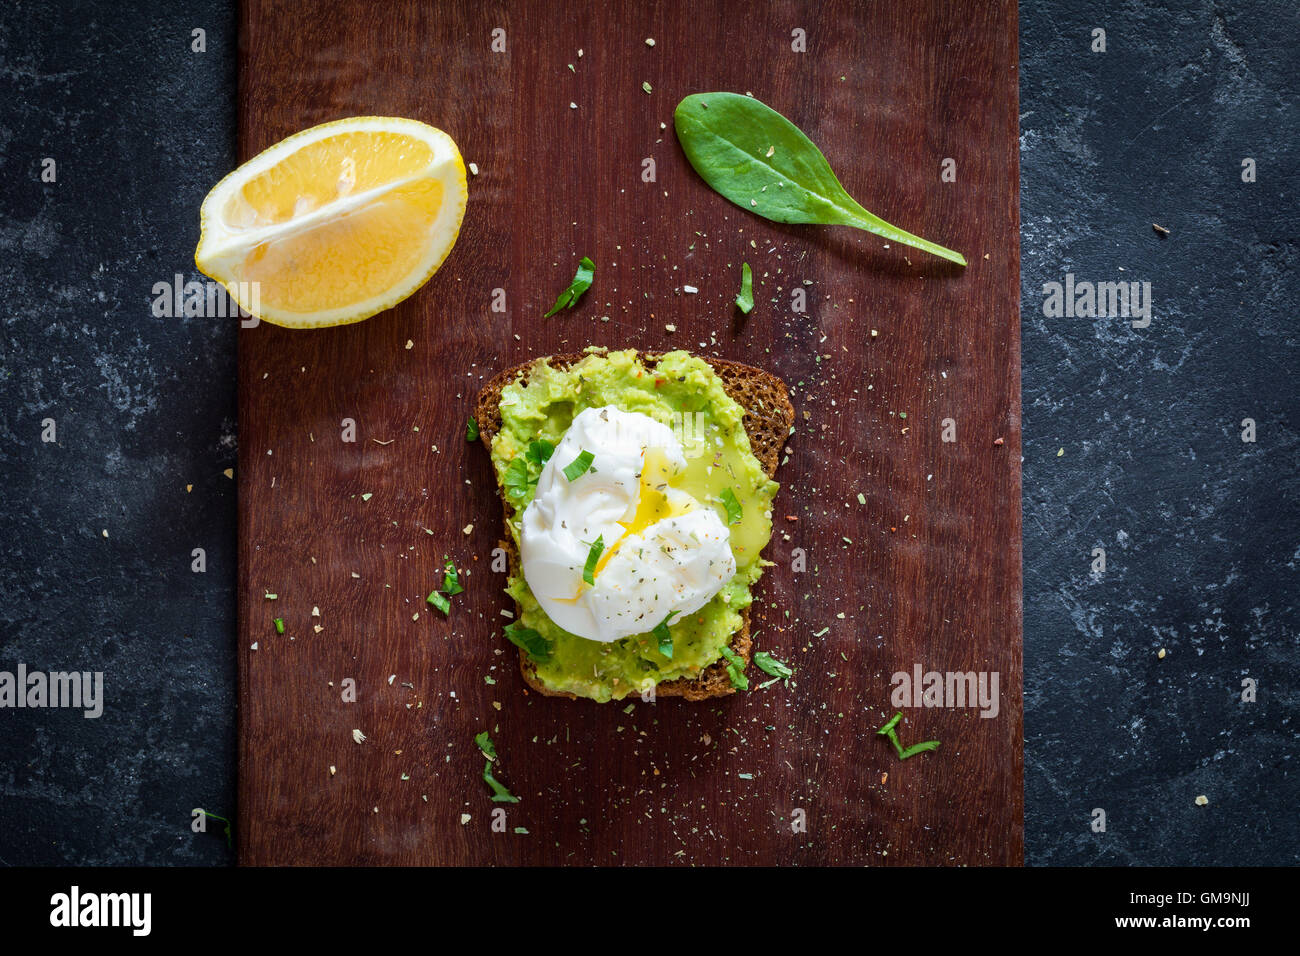 Avocado and poached egg sandwich on wooden cutting board, table top view healthy food - Stock Image